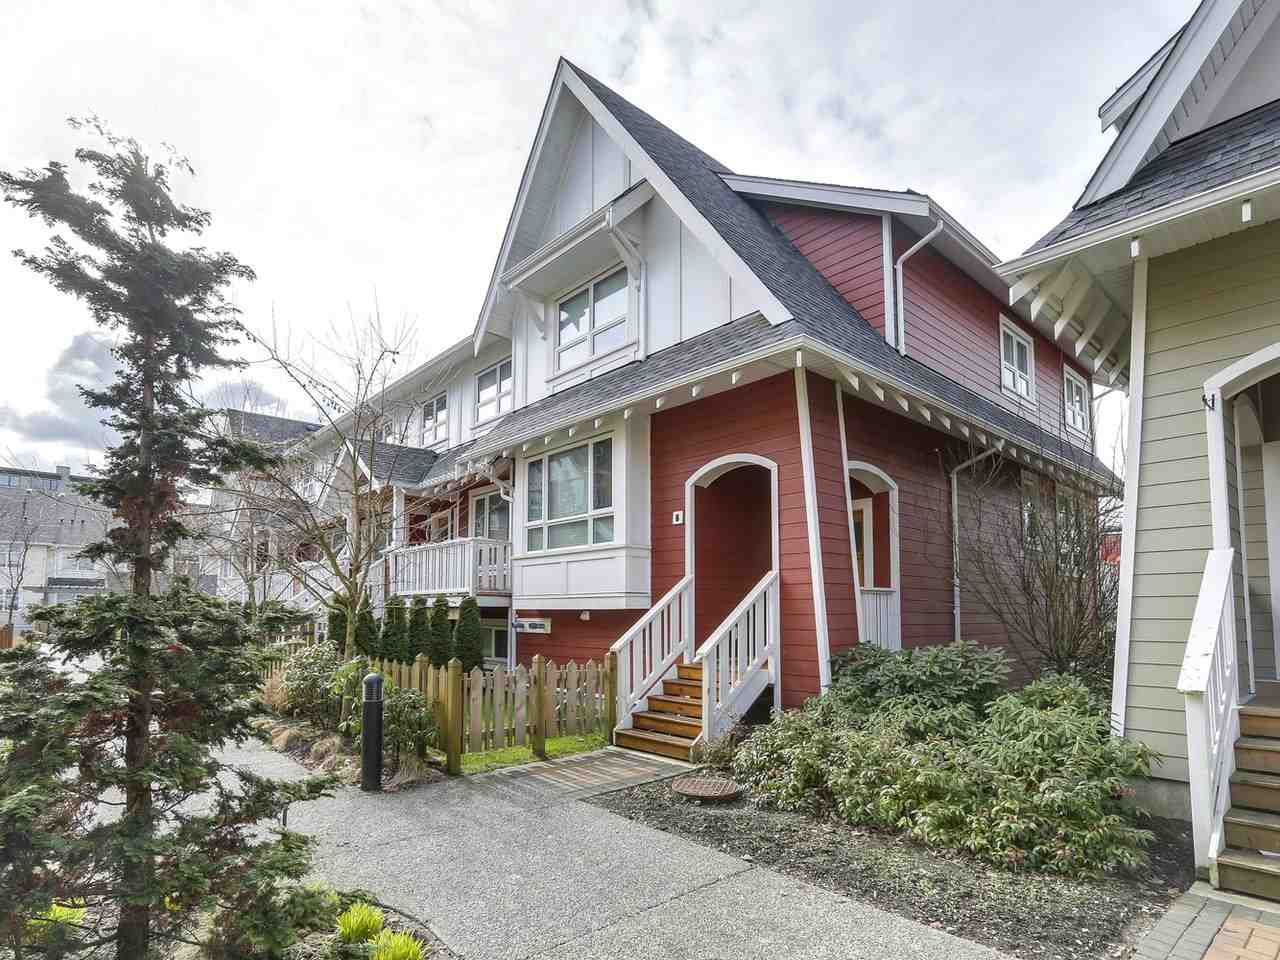 """Main Photo: 6 218 CAMATA Street in New Westminster: Queensborough Townhouse for sale in """"Canoe in Port Royal"""" : MLS®# R2246758"""